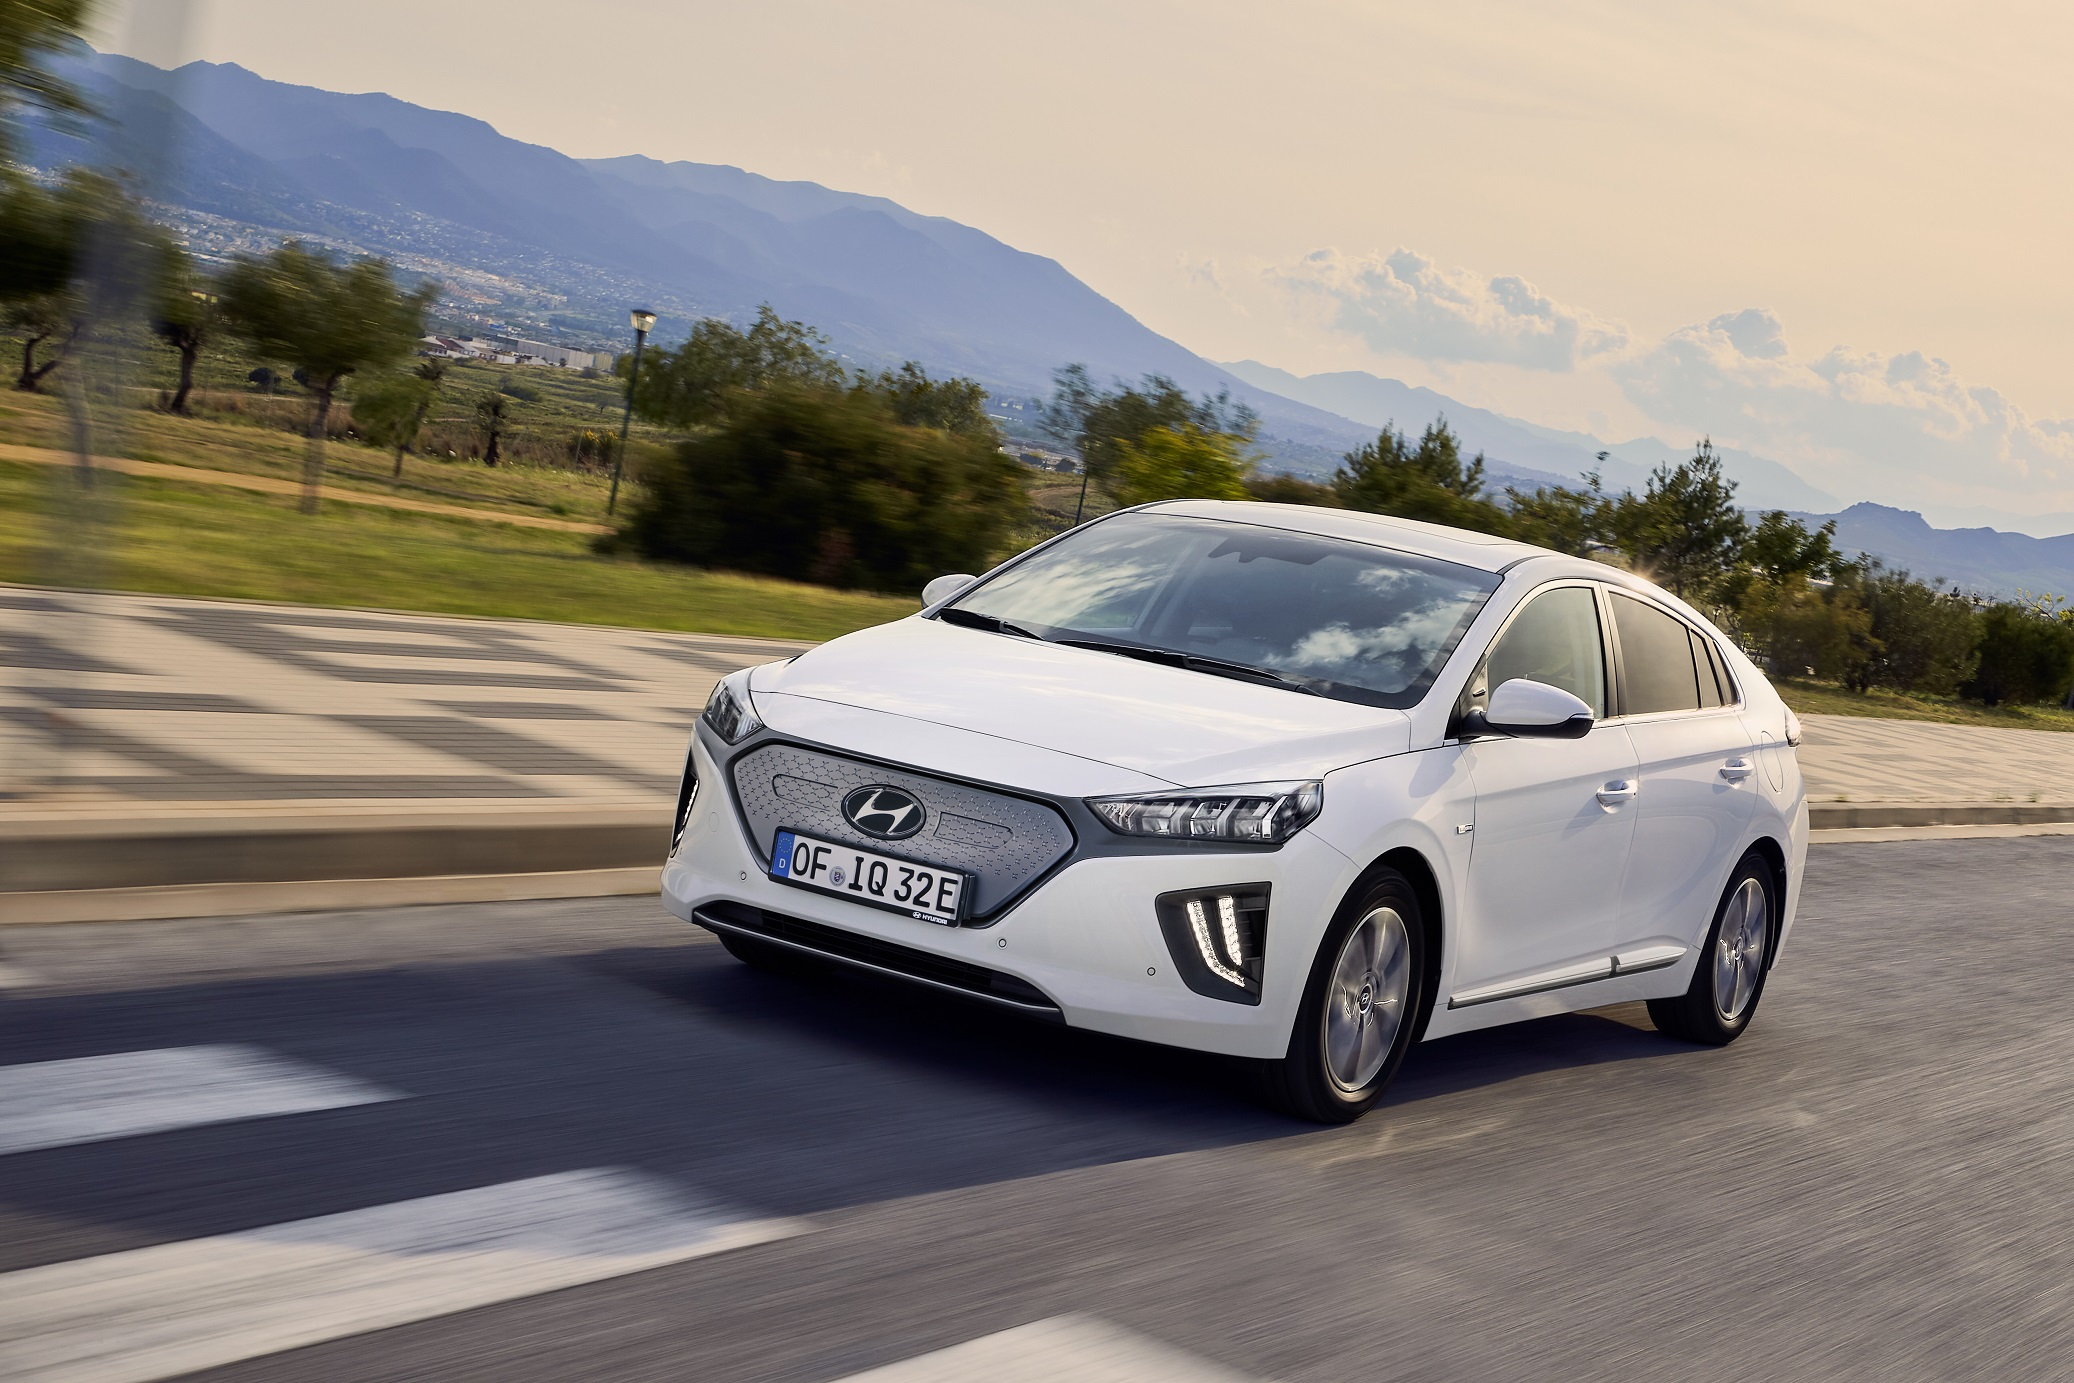 Hyundai Had An Interesting Strategy With Their Ioniq Program Giving Three Electric Options Built On The Same Car Hybrid Plug In Full